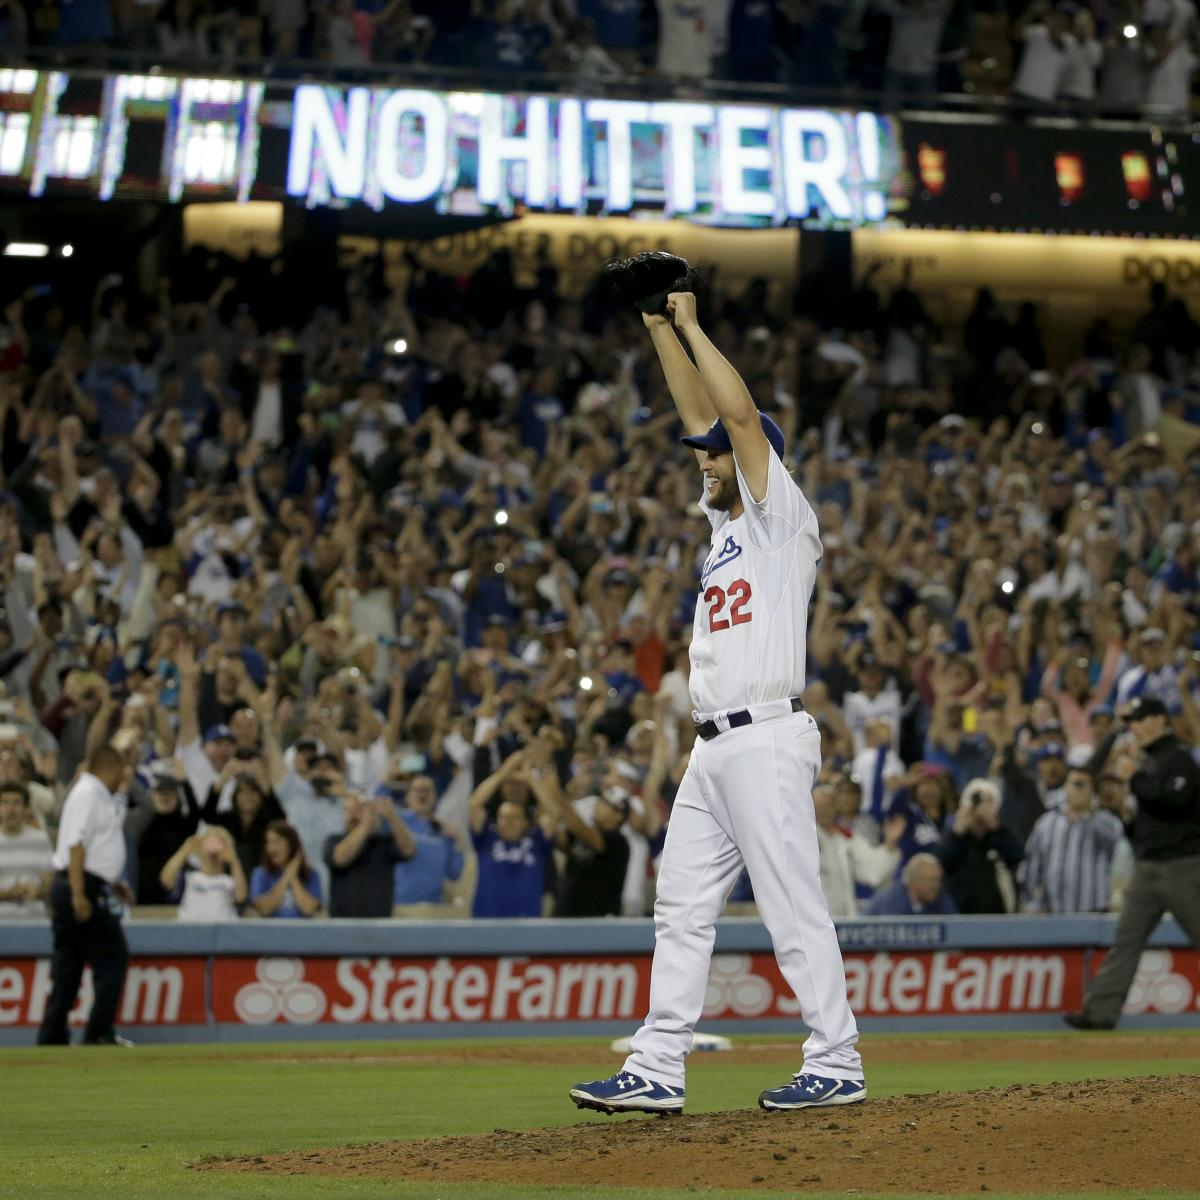 Ranking the Best No-Hitters Since 2010